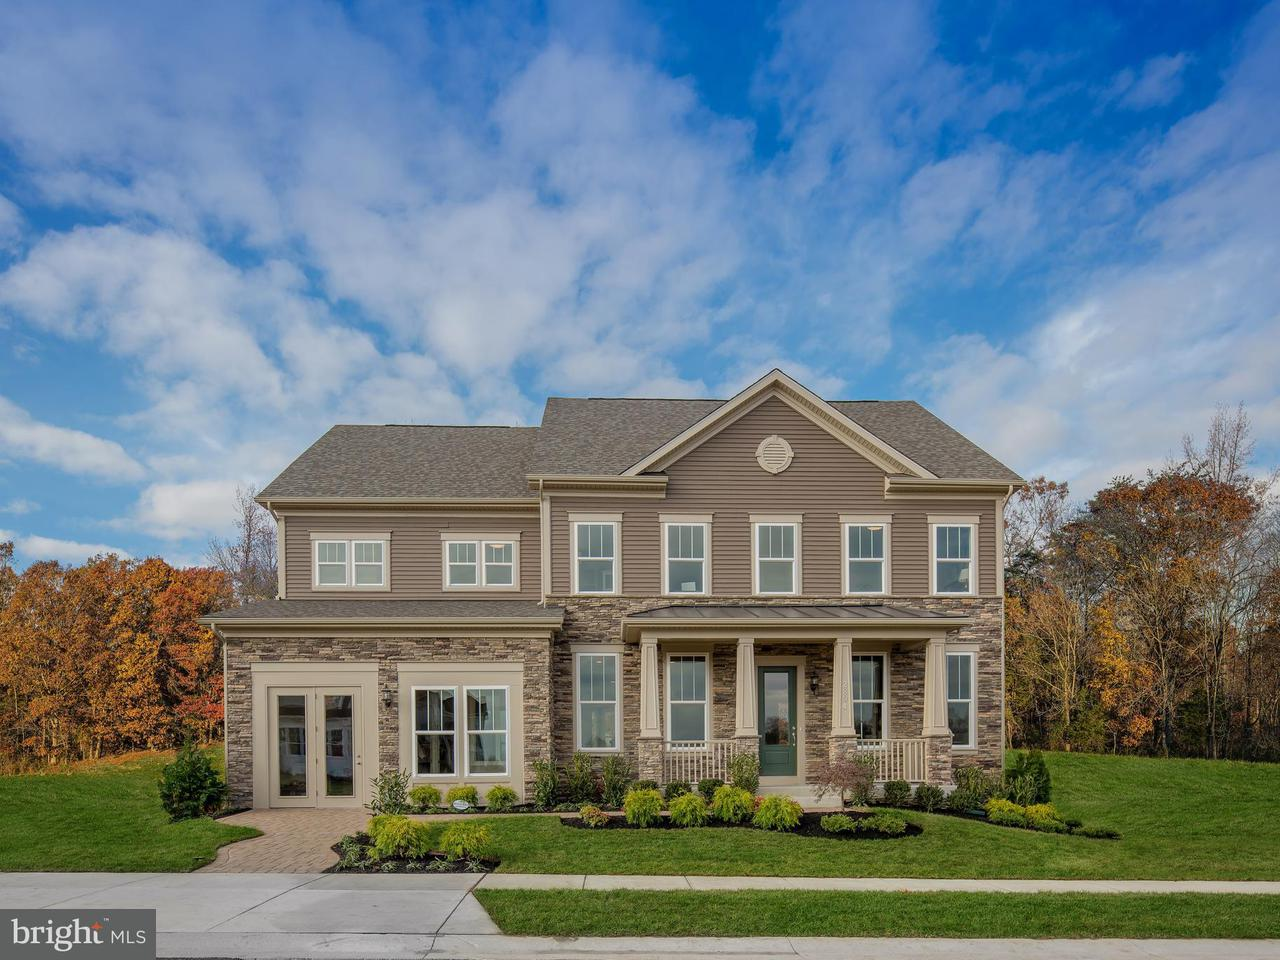 Single Family Home for Sale at Broad Wing Drive Broad Wing Drive Odenton, Maryland 21113 United States